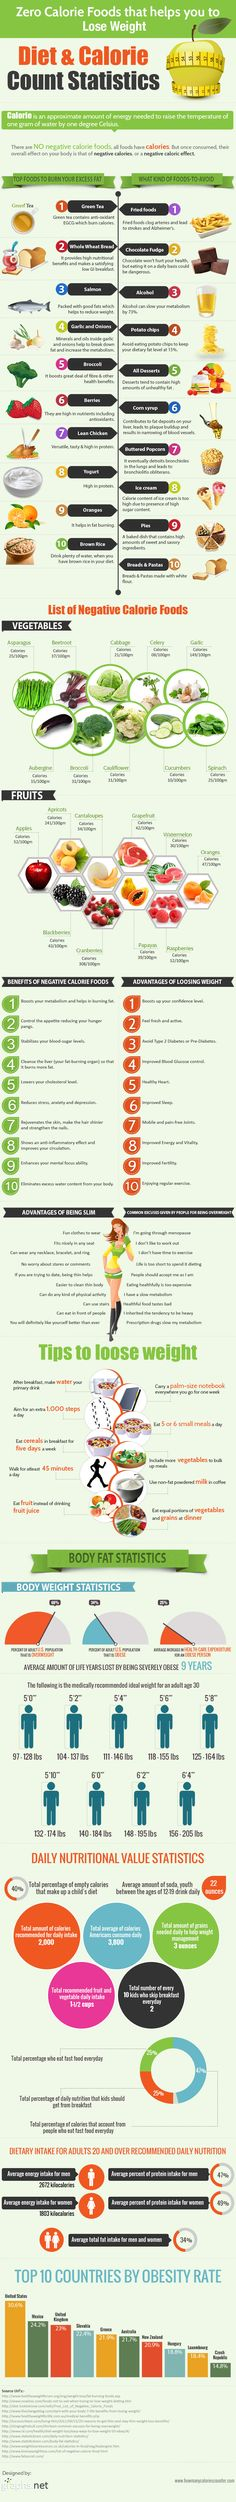 "HEALTHY FOOD - ""Diet and Calorie"" - ""Lose Weight With These #ZeroCalorie Foods 